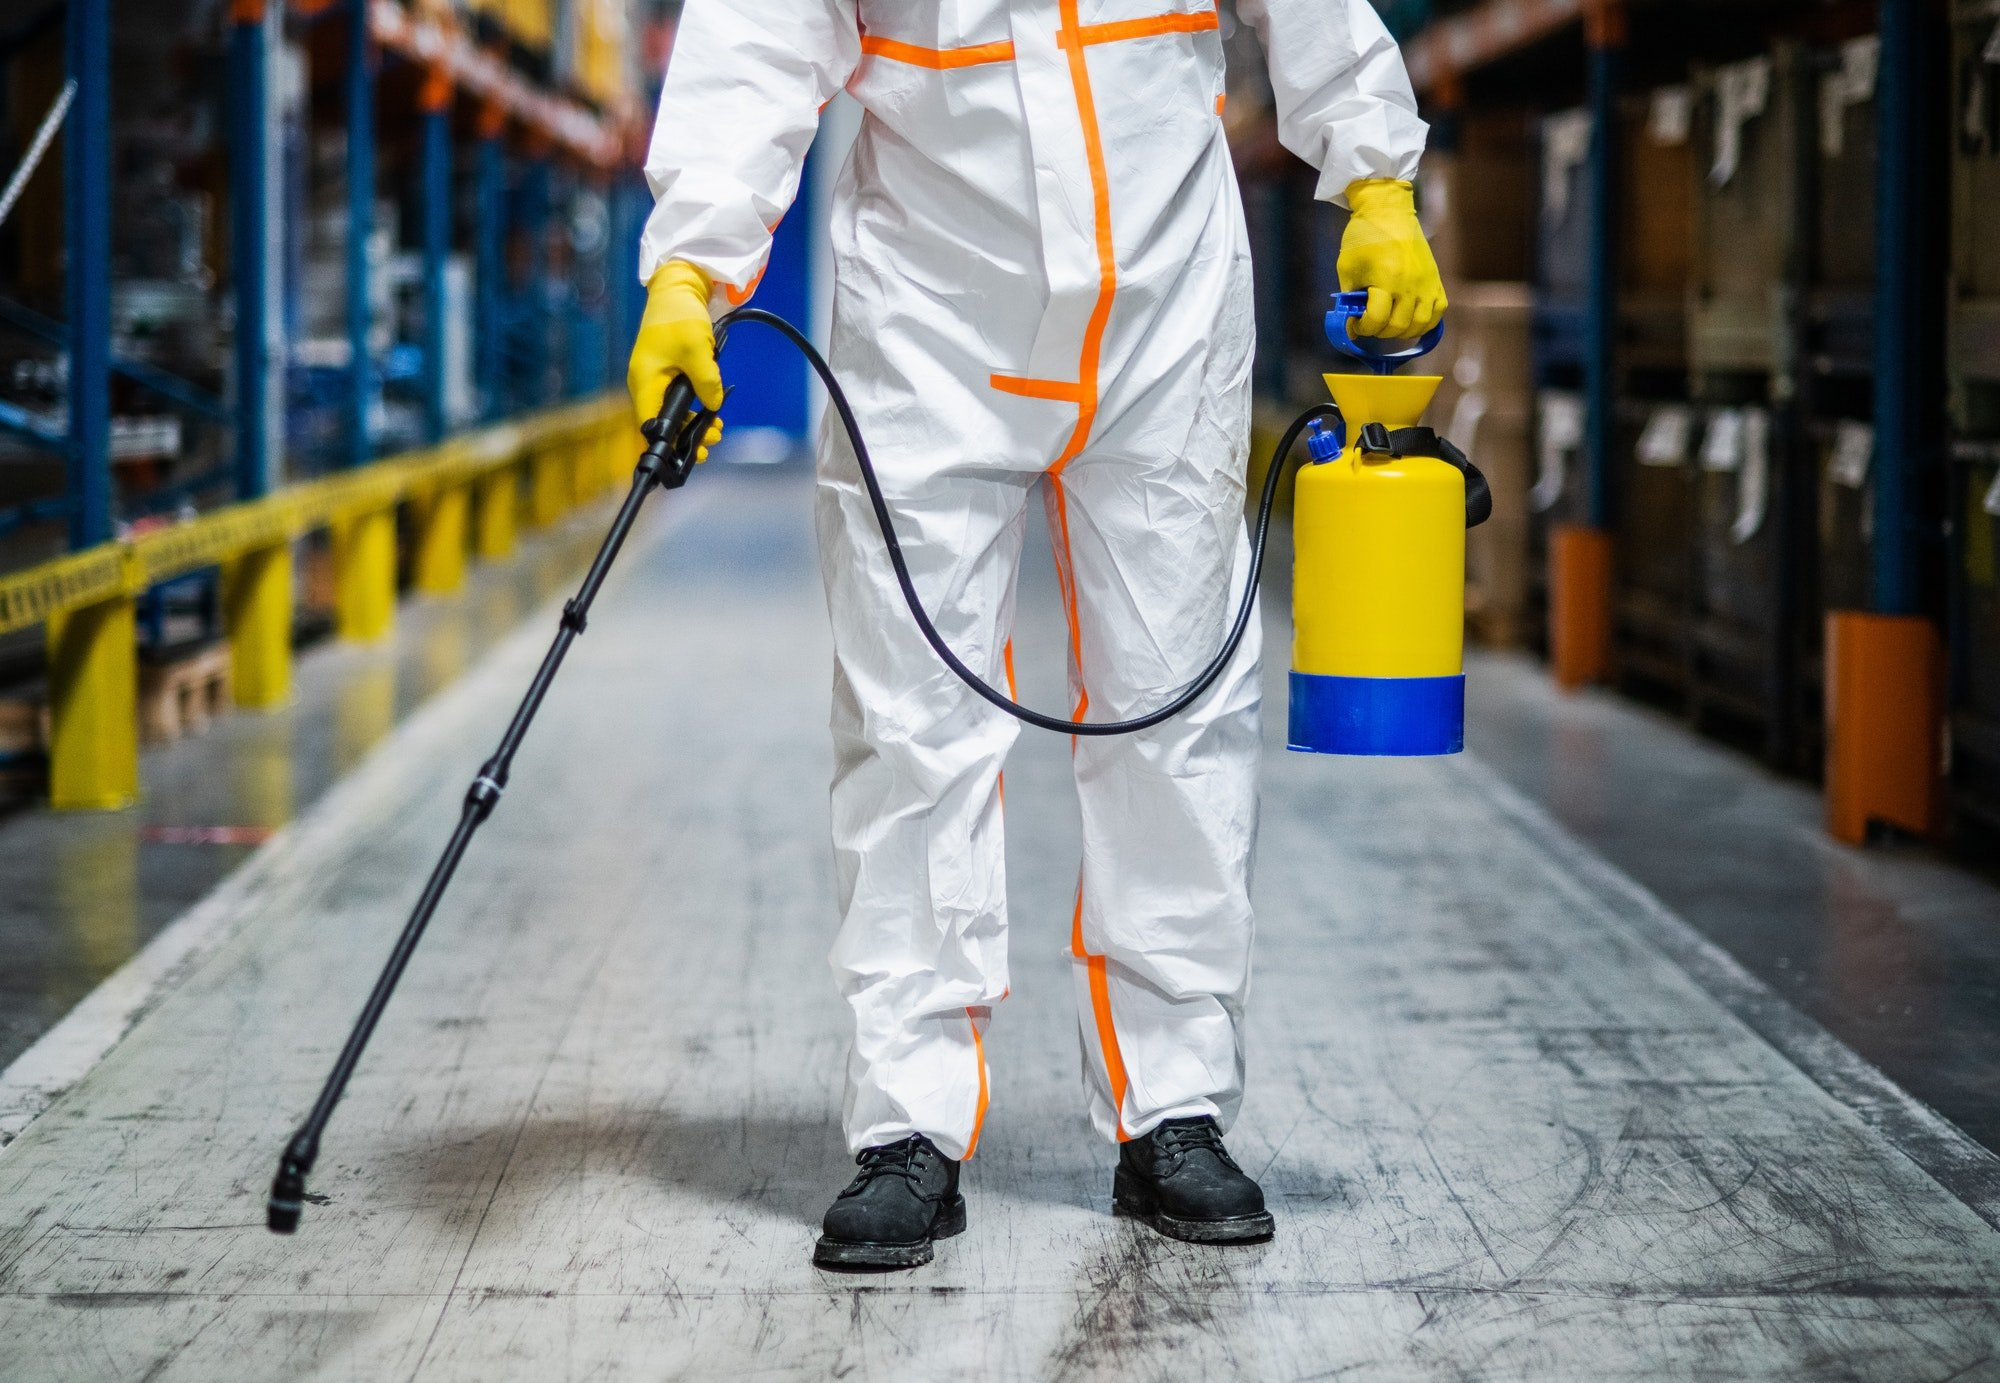 Man worker with protective mask and suit disinfecting industrial factory with spray gun